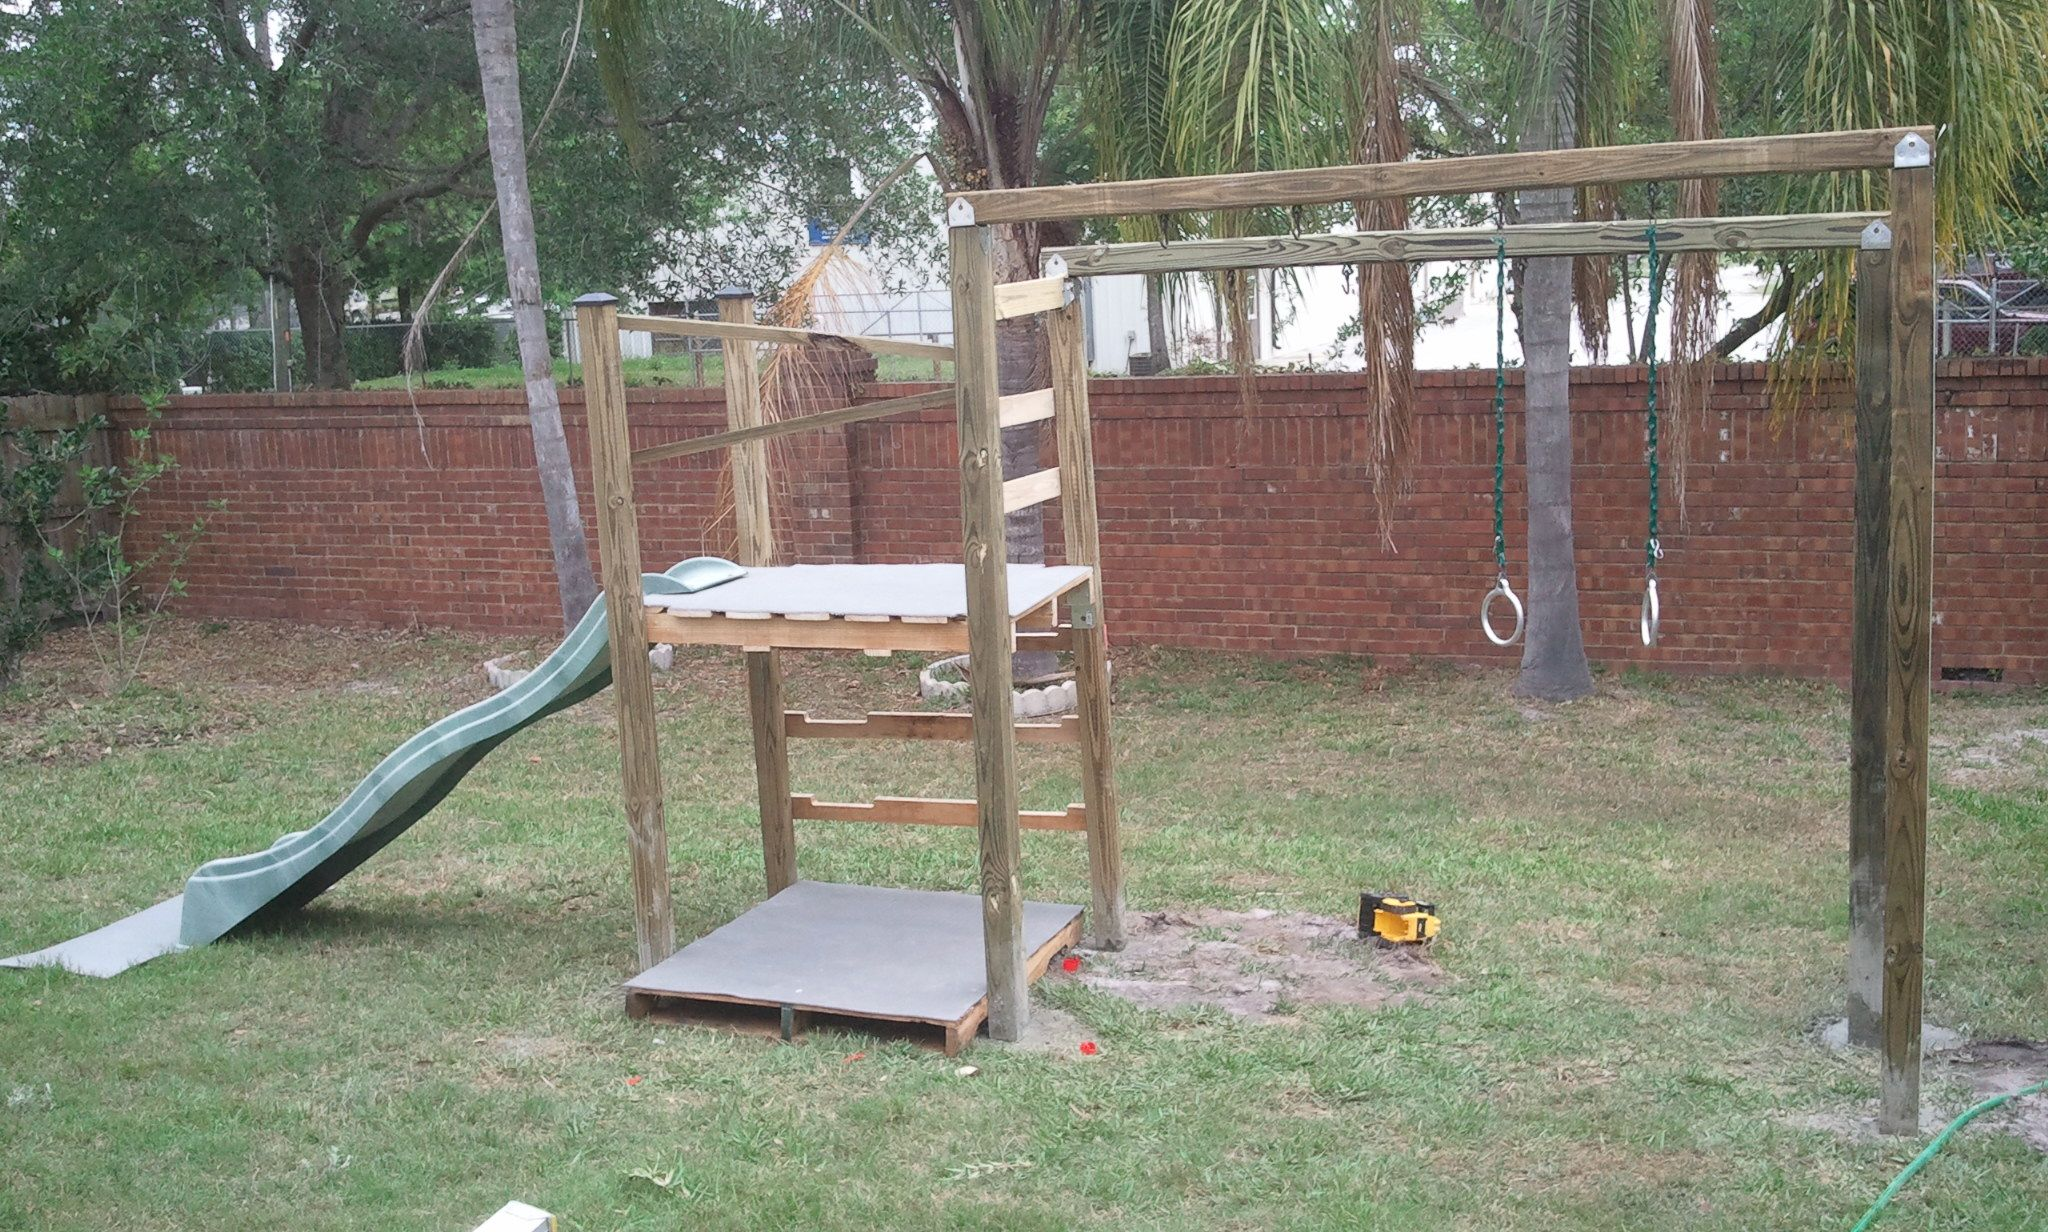 1001 pallets pallet kids playground here is a home made playground - Image Result For Pallet Playground